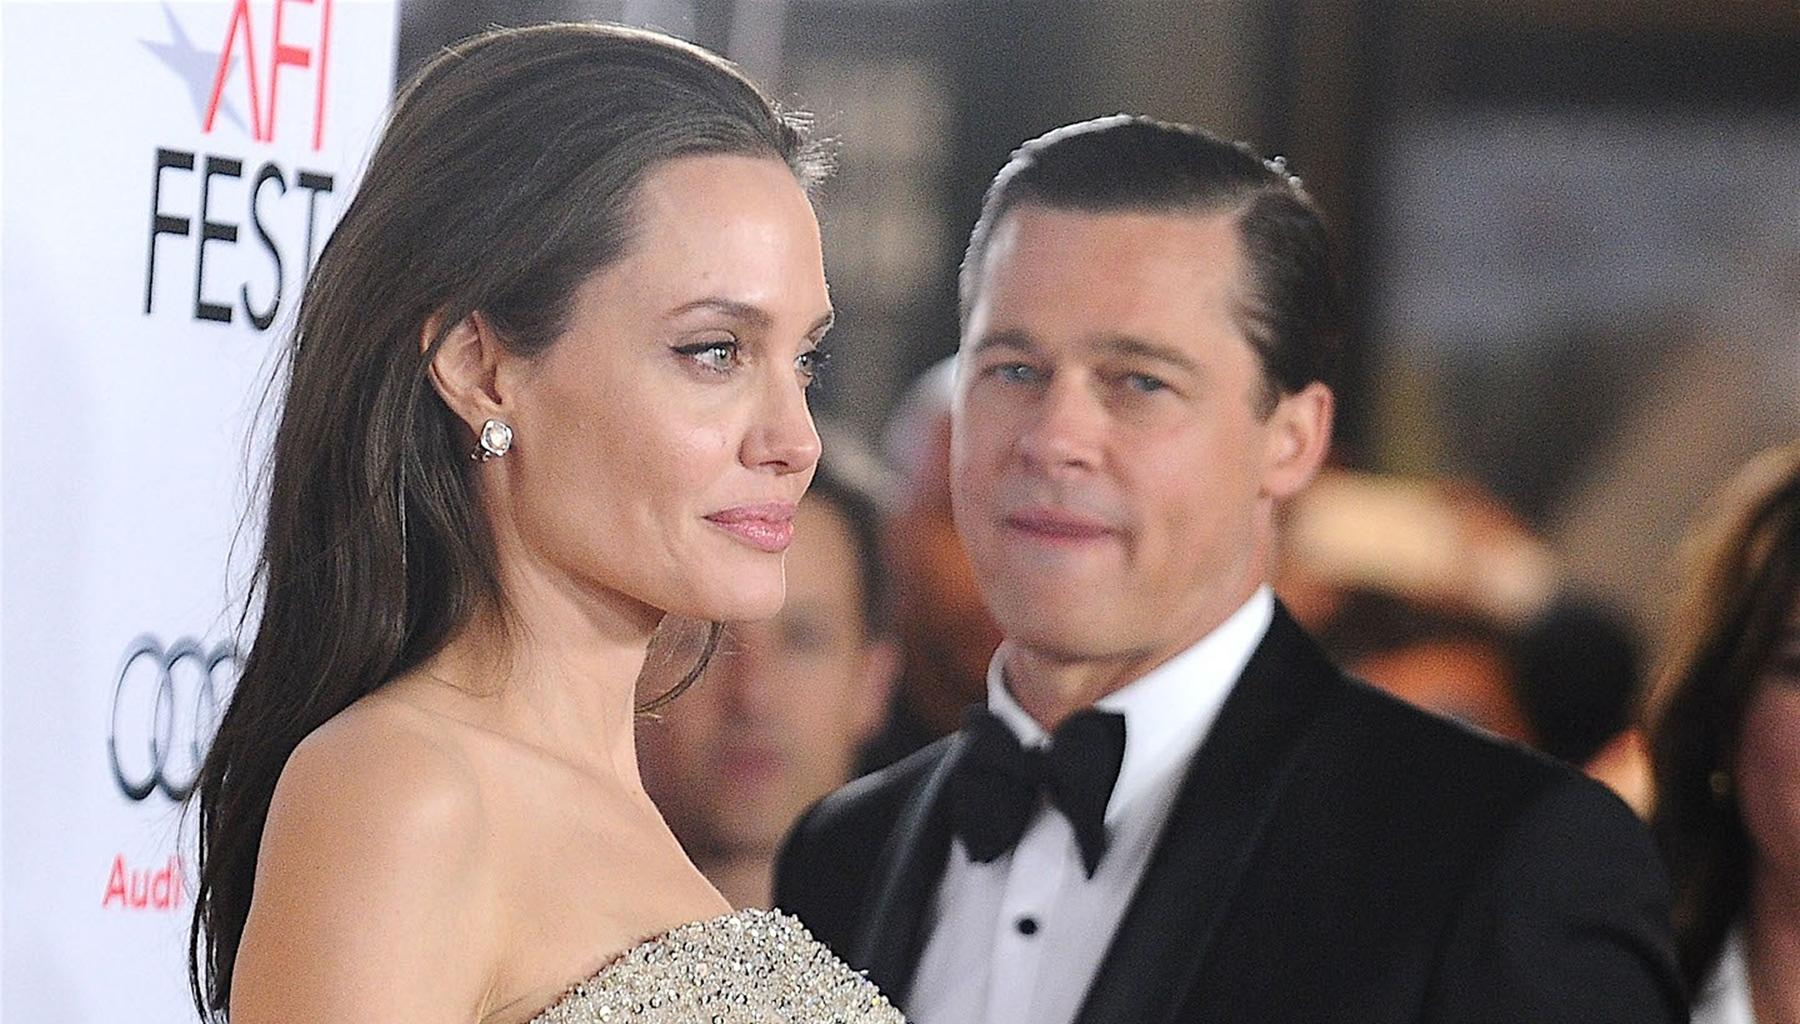 Angelina Jolie Makes Surprising Comments About Her Divorce From Brad Pitt -- Fans Find Her More Human